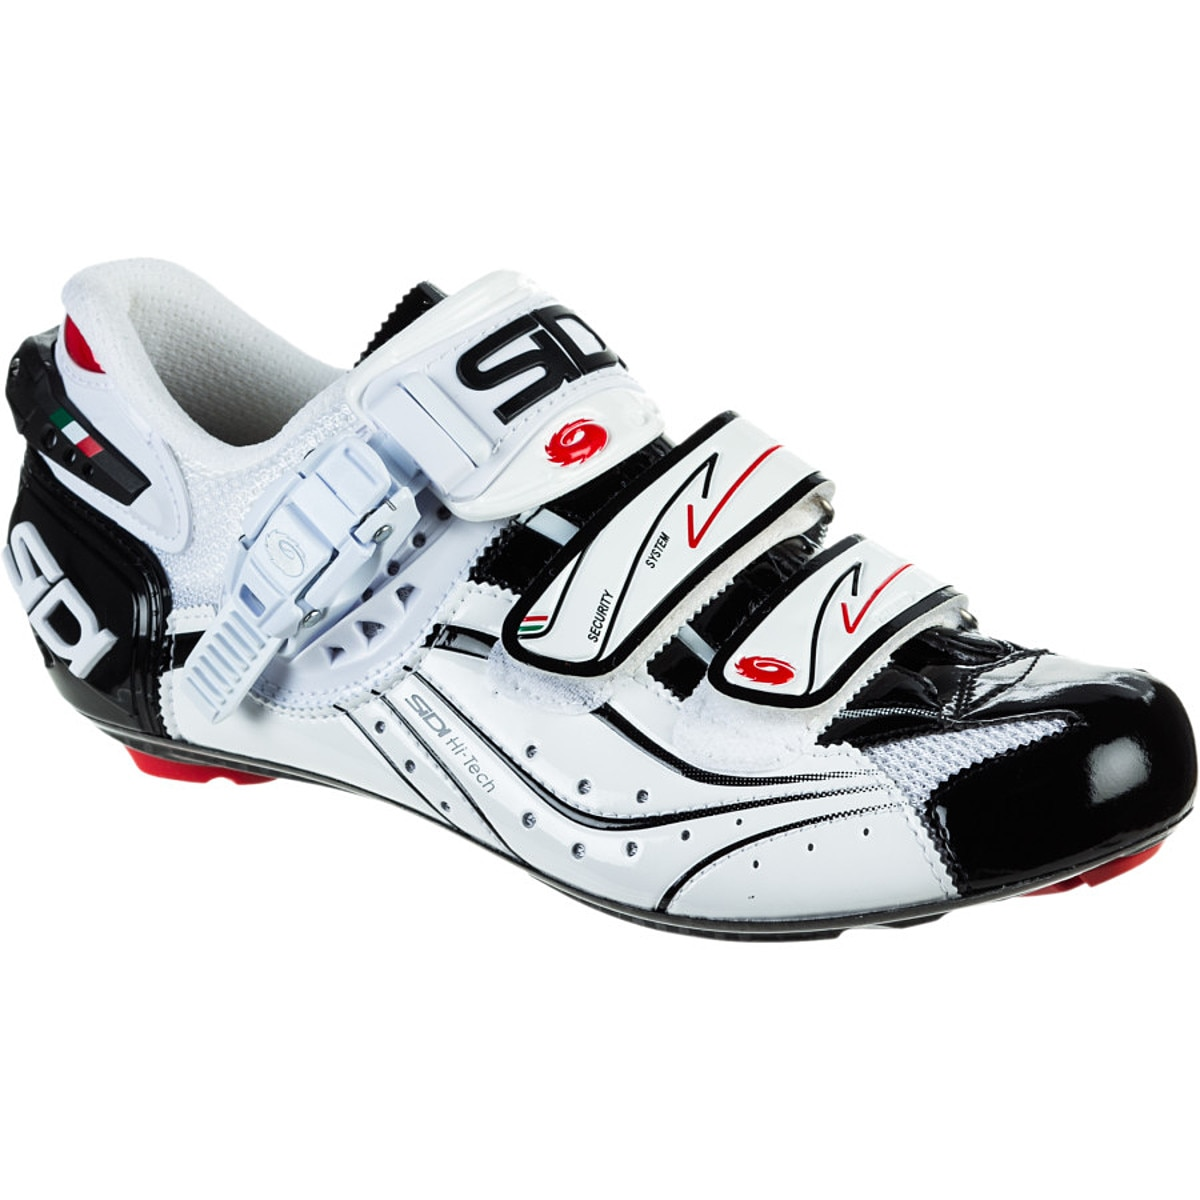 sidi genius 6 6 vent carbon shoes competitive cyclist. Black Bedroom Furniture Sets. Home Design Ideas